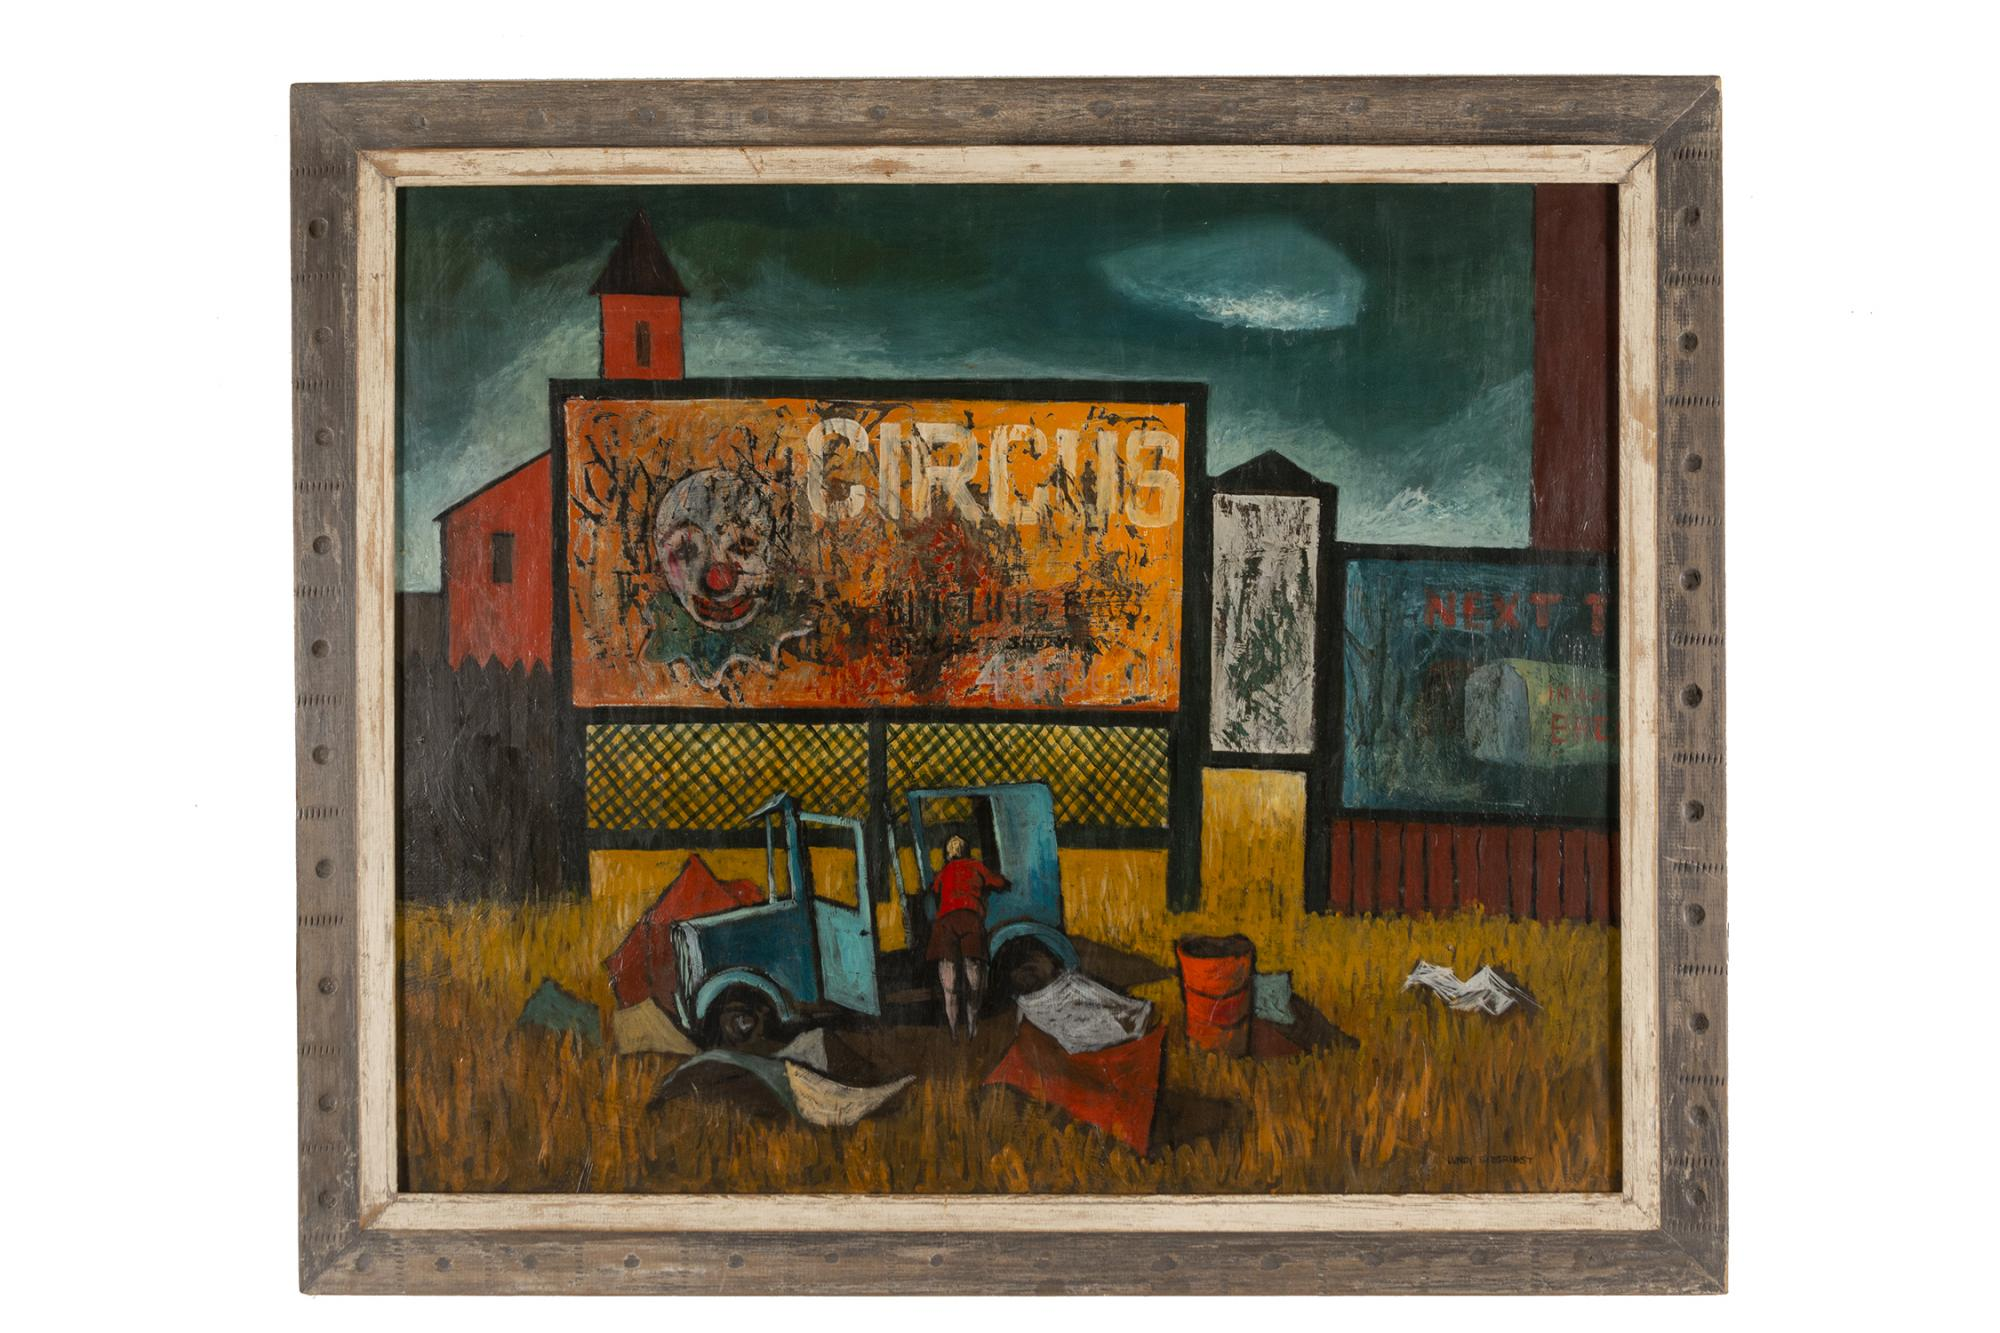 Lundy Siegriest (1925–1985) United States, Scraped Billboards, c. 1950, Tempera on canvas, Museum purchase [2012.15.1;s007]